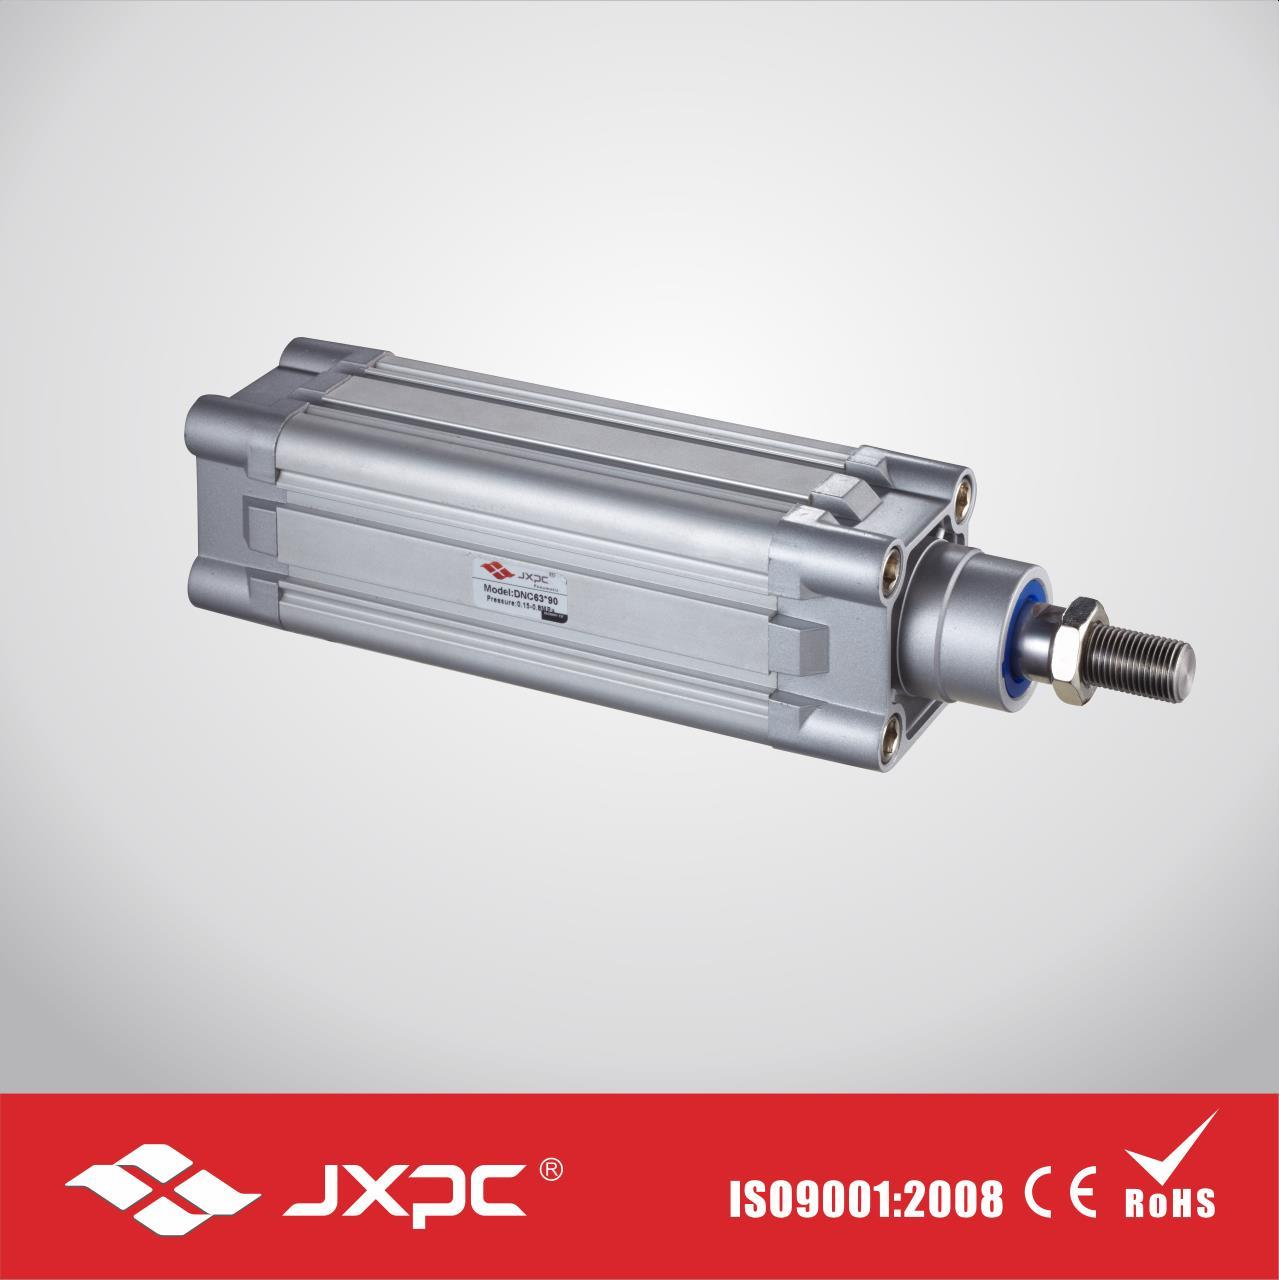 Cq2 Double Action Single Action Compact Pneumatic Cylinder